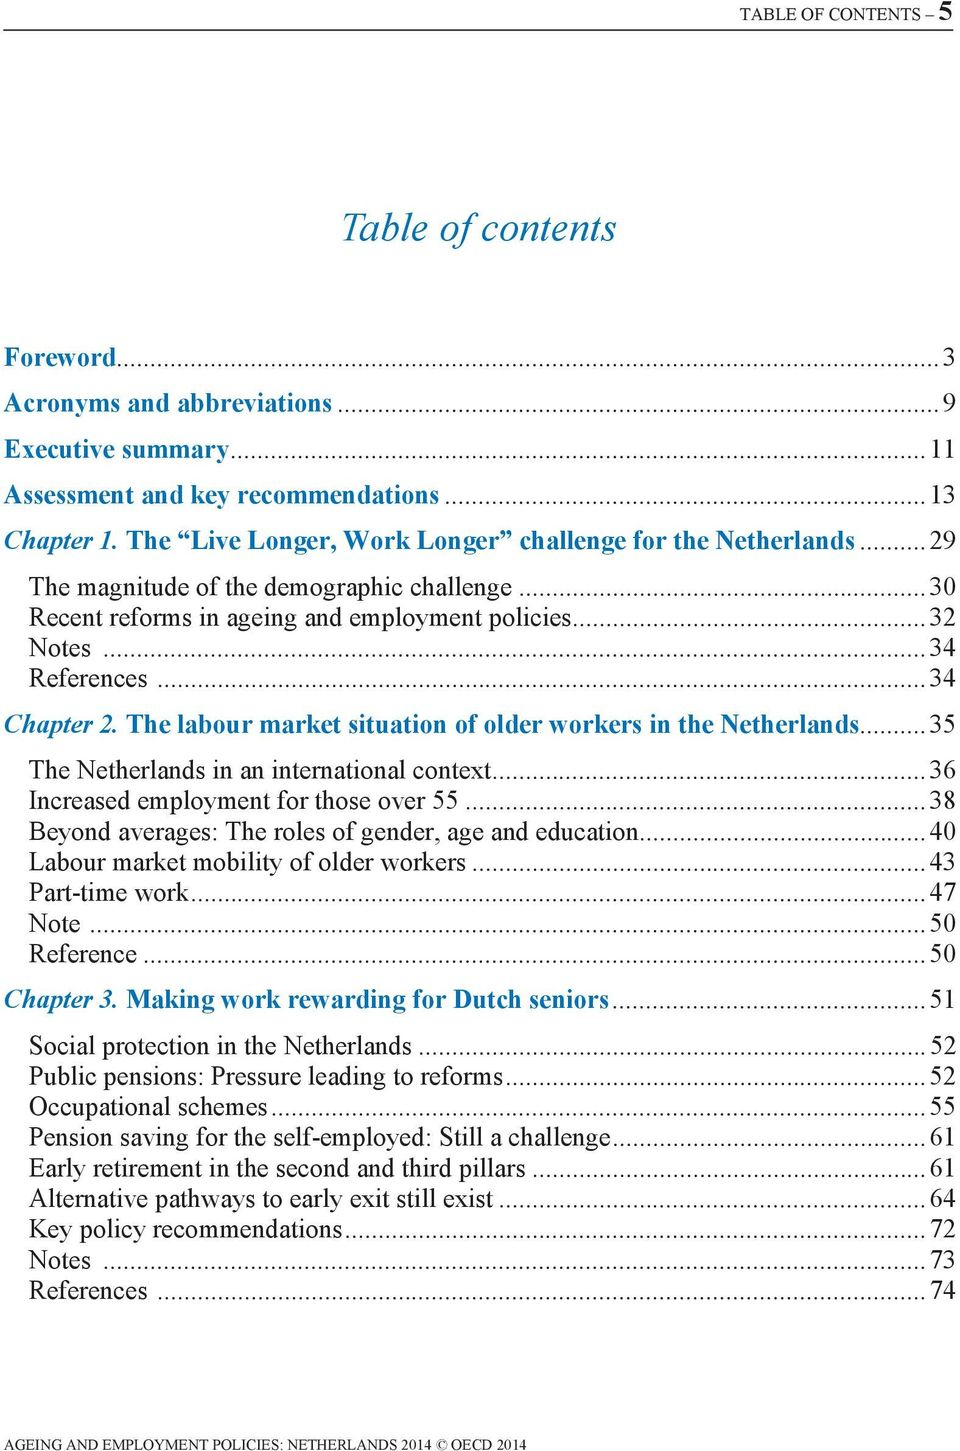 .. 34 Chapter 2. The labour market situation of older workers in the Netherlands... 35 The Netherlands in an international context... 36 Increased employment for those over 55.